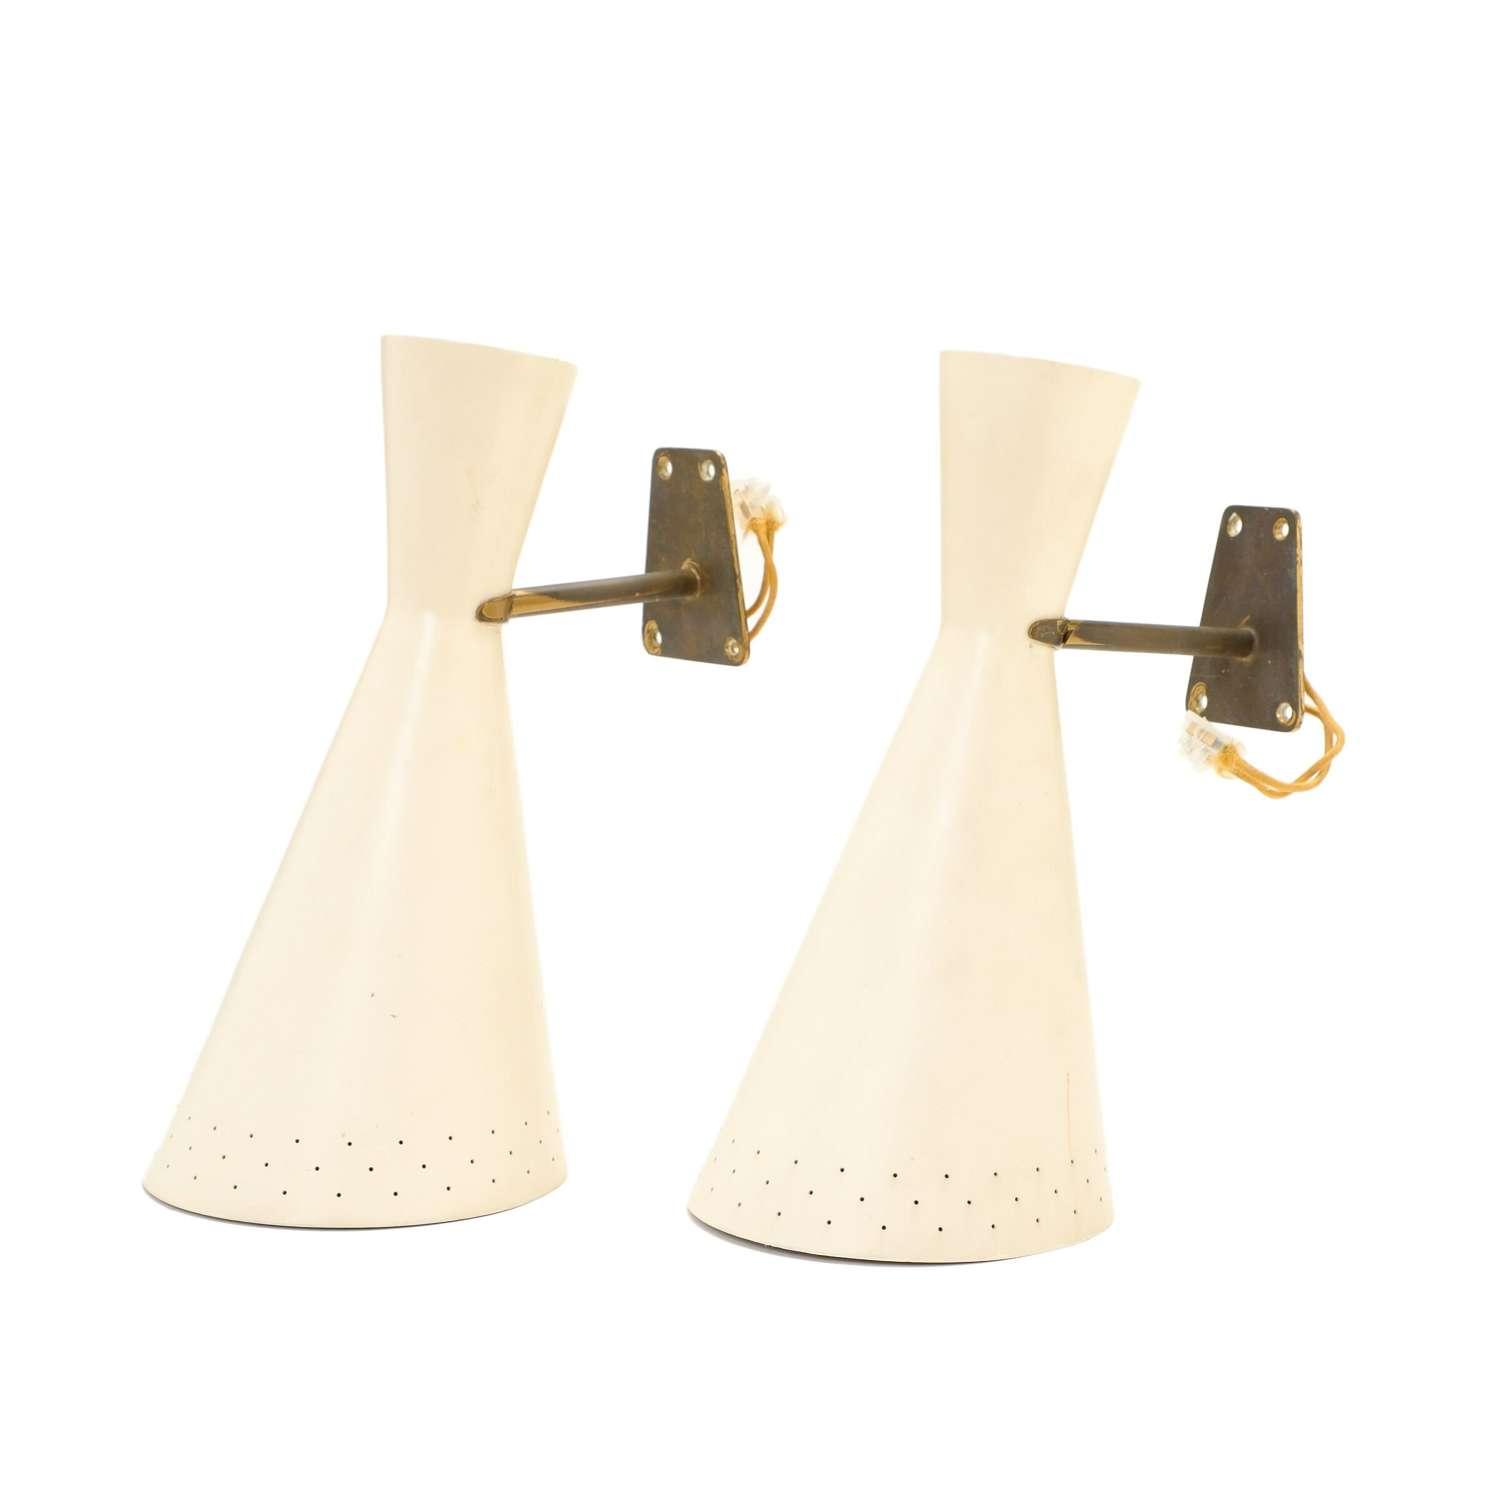 A pair of 1950s Italian brass and enamel wall lamps